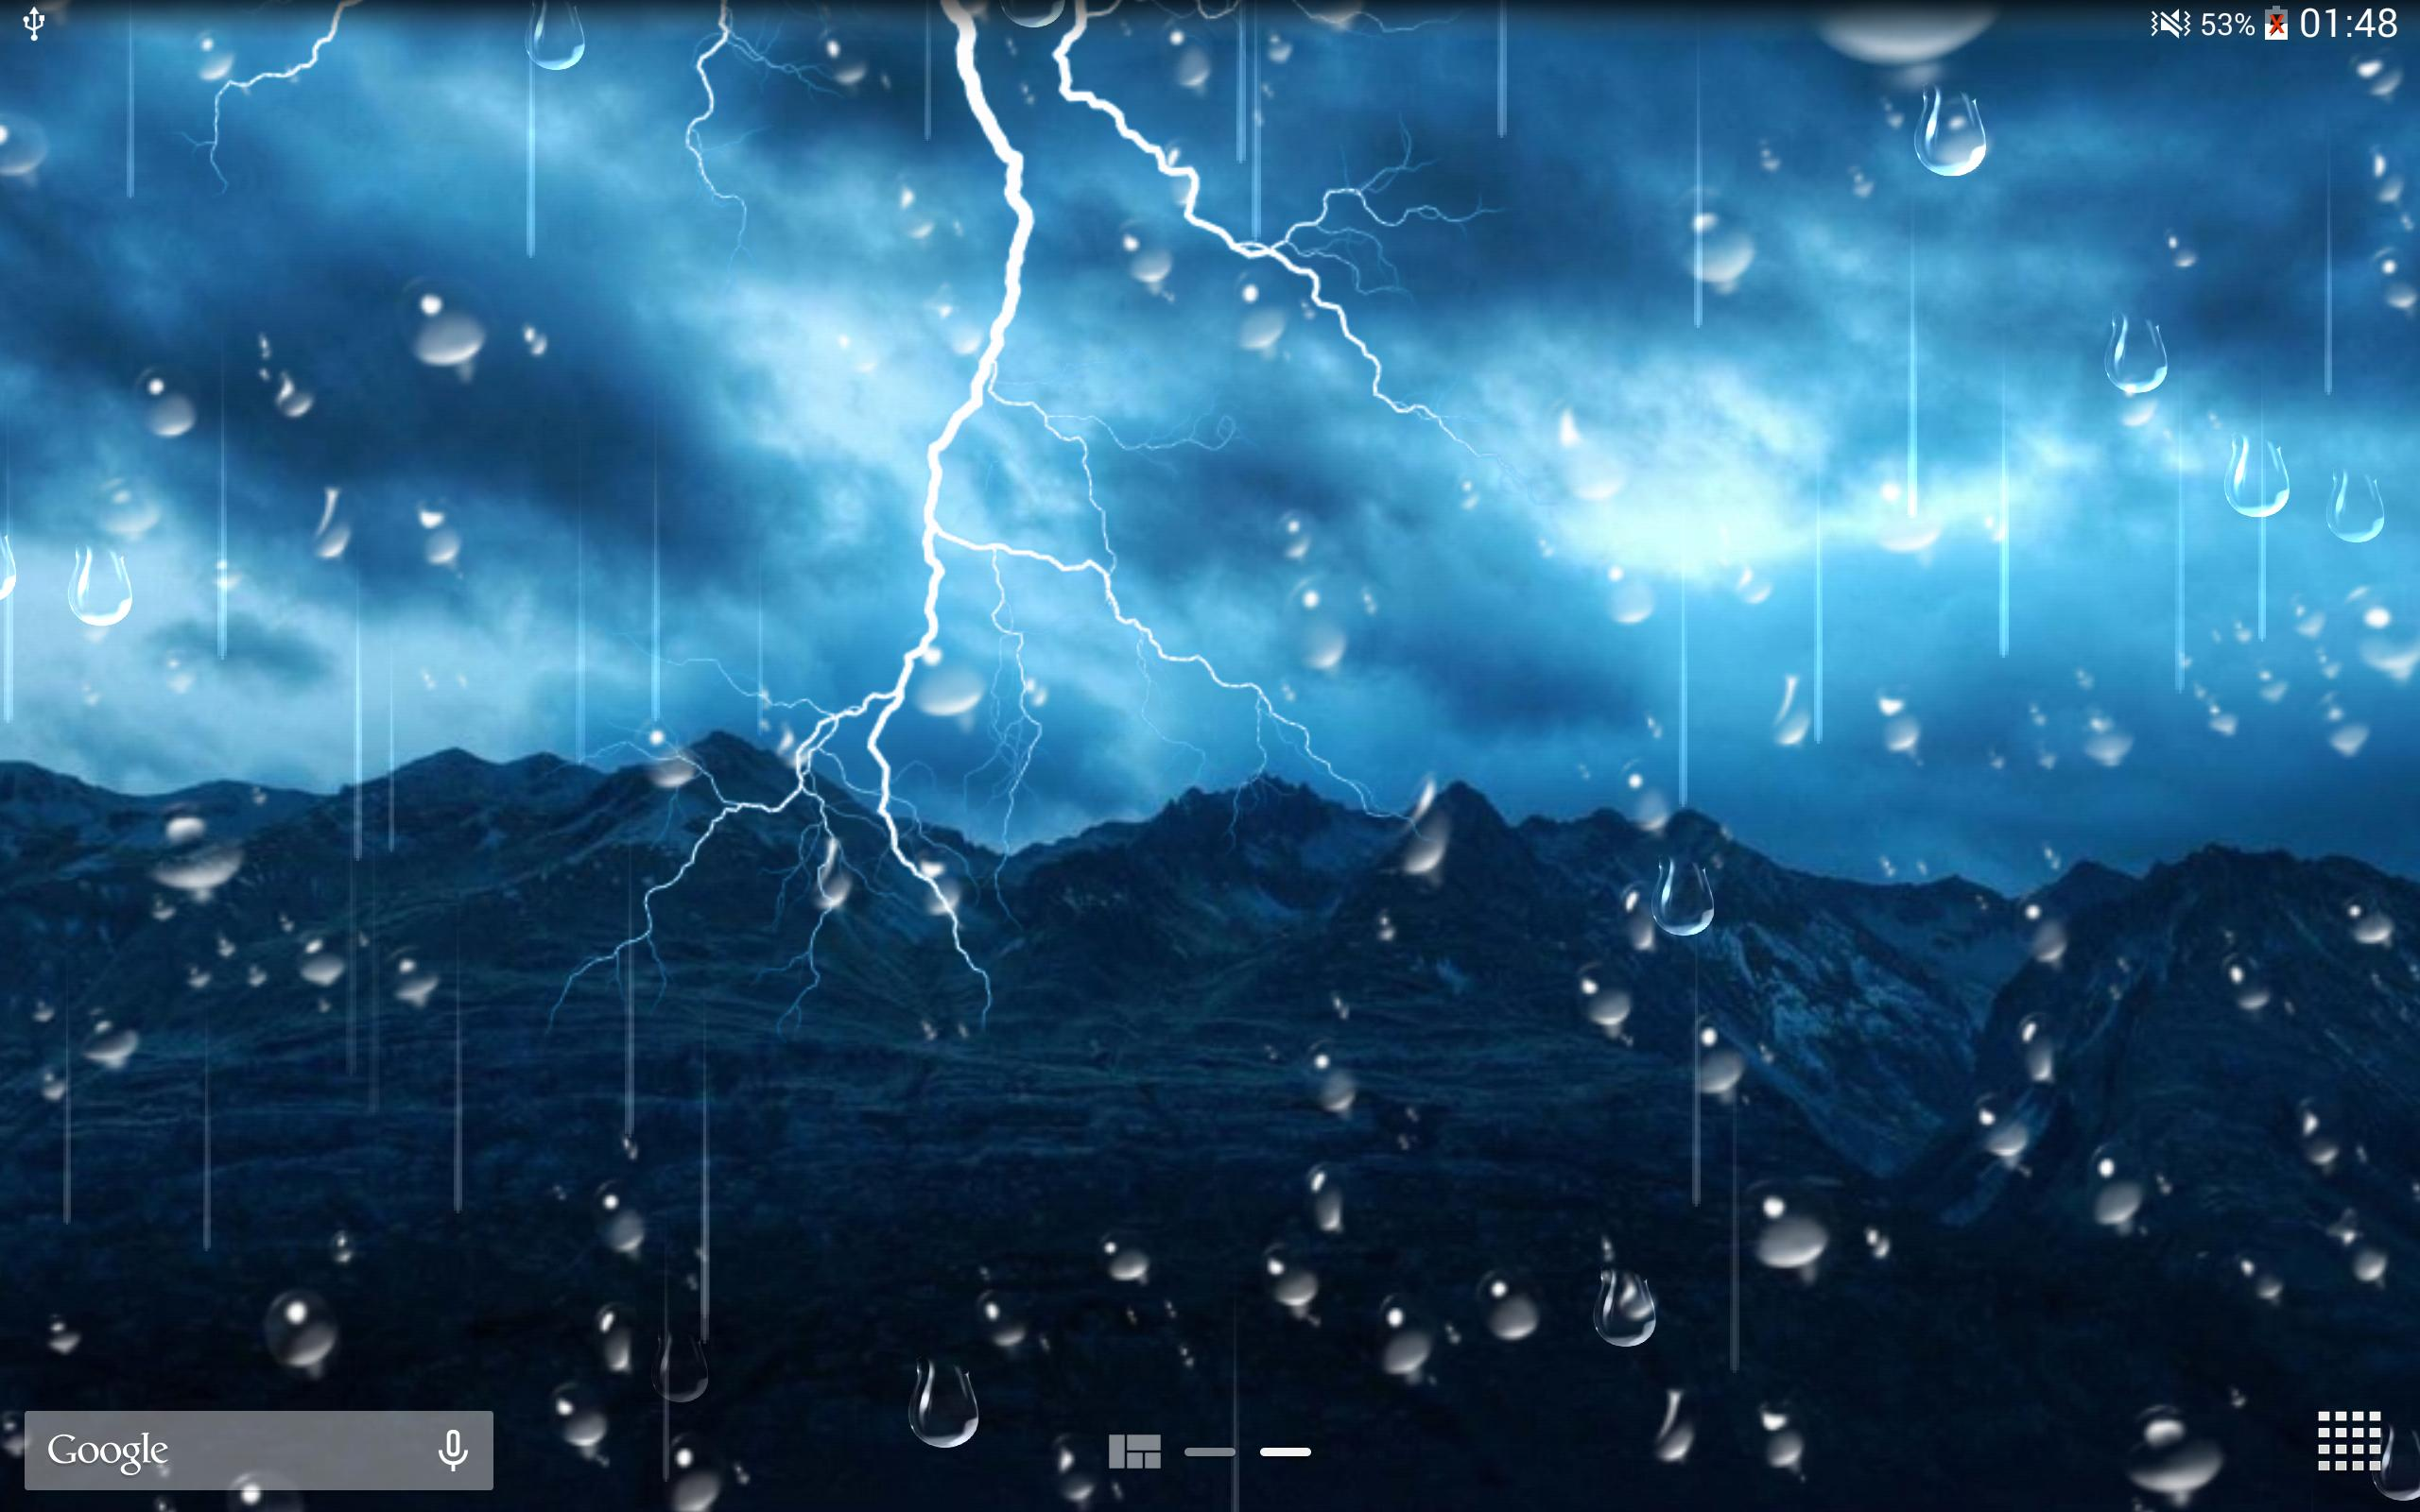 Thunder Storm Live Wallpaper for Android   APK Download 2560x1600